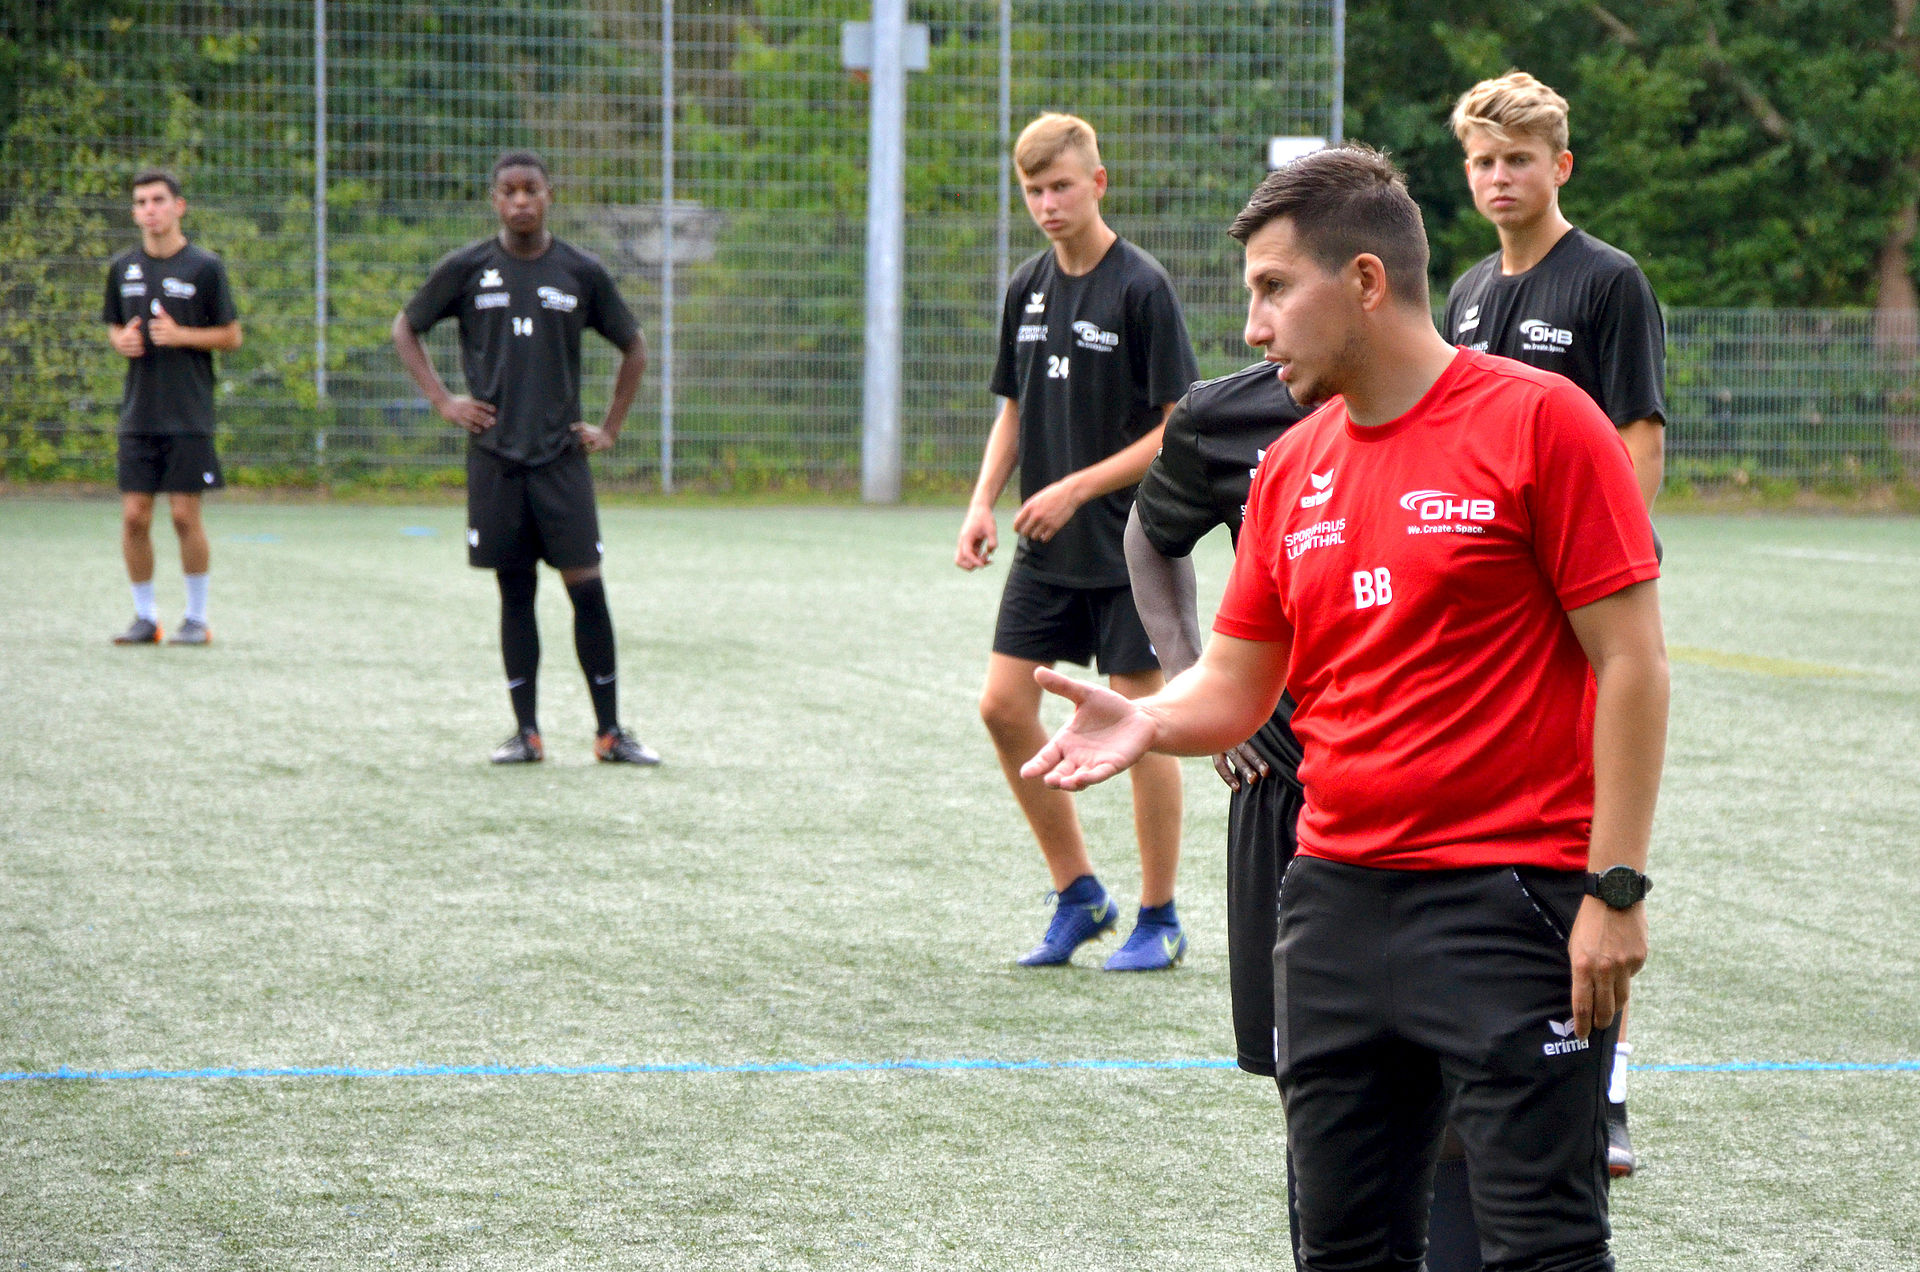 Winning in your head! OHB and SC Borgfeld: Promoting young talent in football